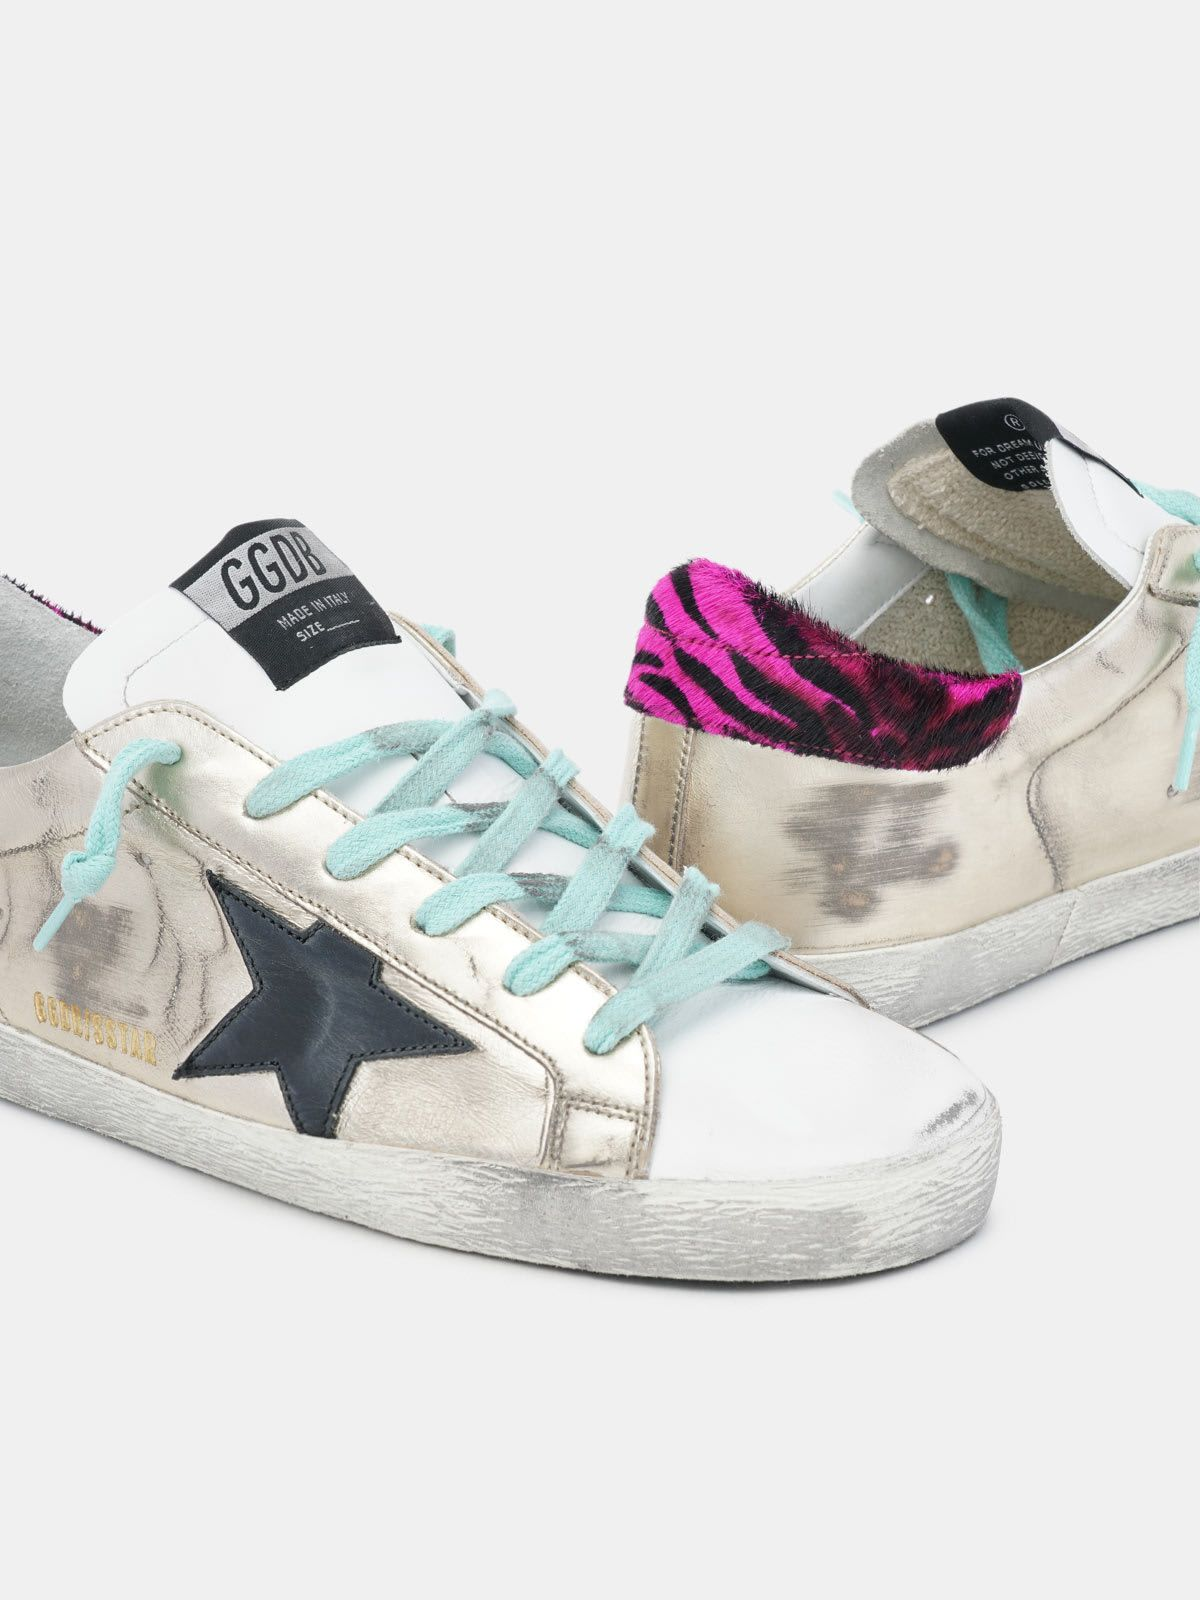 Gold Super-Star sneakers with zebra-print heel tab